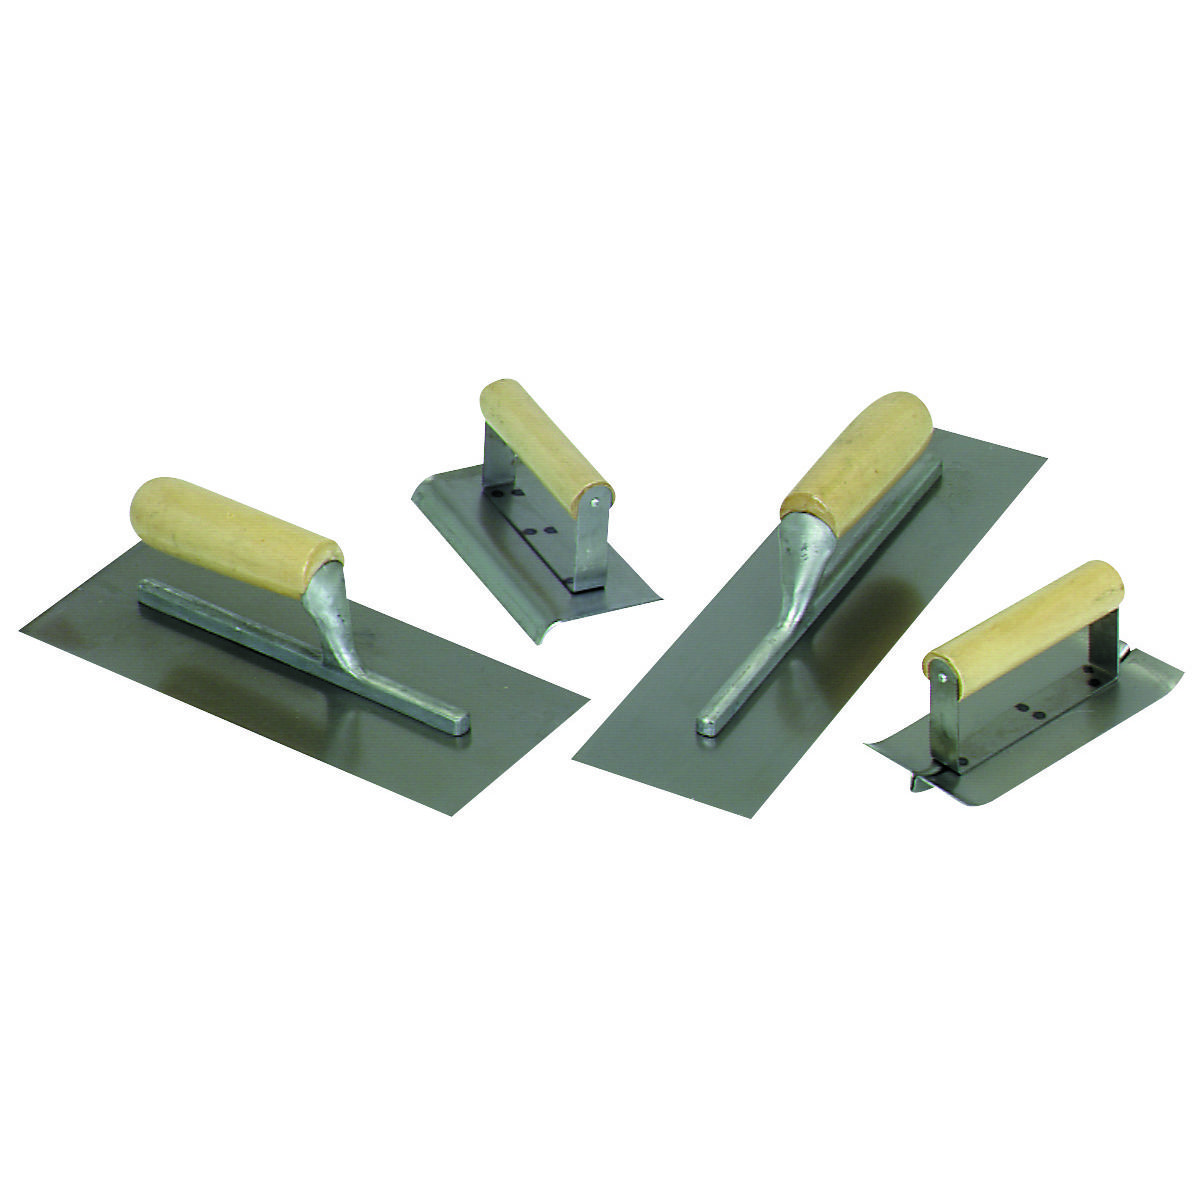 Paver Extractor Tool Available At Bf Landscape 856 740 1445 Www Bflandscape Com Hardscape Concrete Pavers Retaining Wall